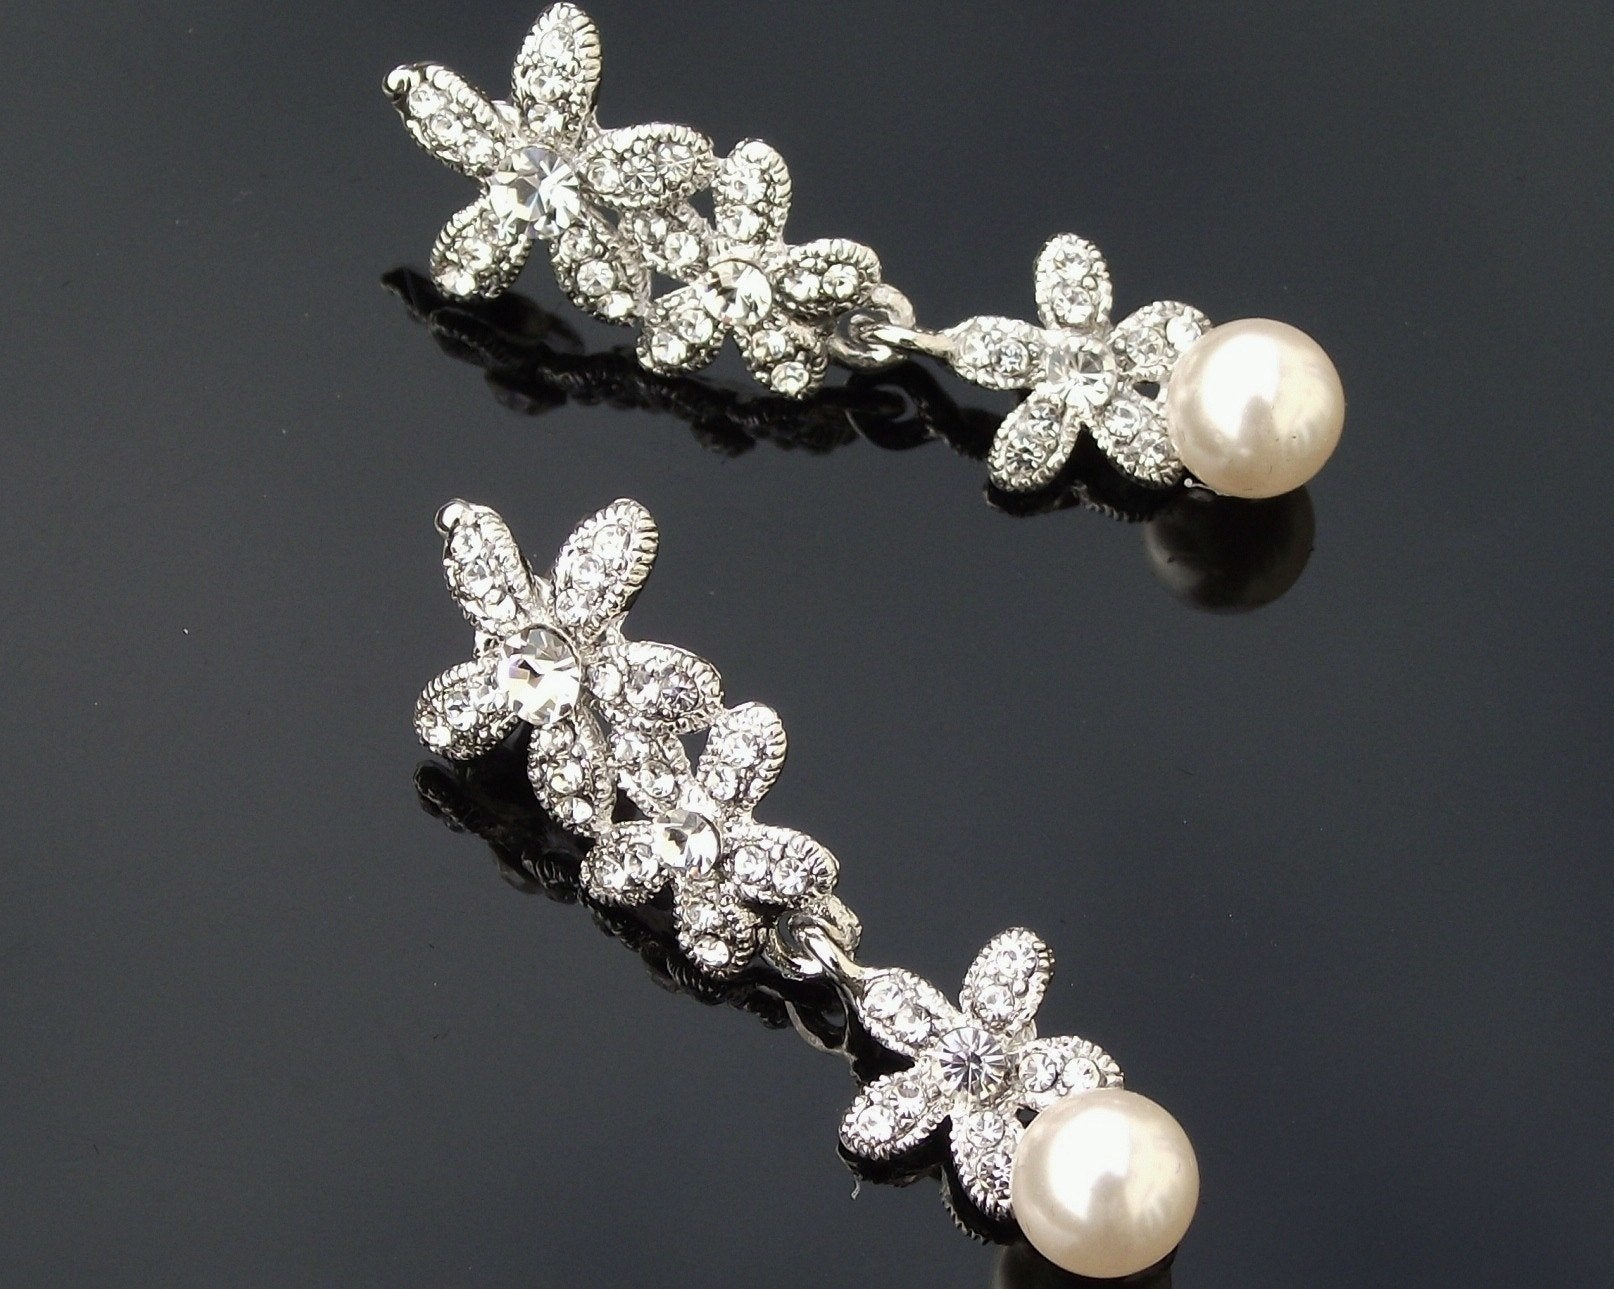 Wedding Earrings - Vintage Style Crystal And Pearl Earrings, Petal